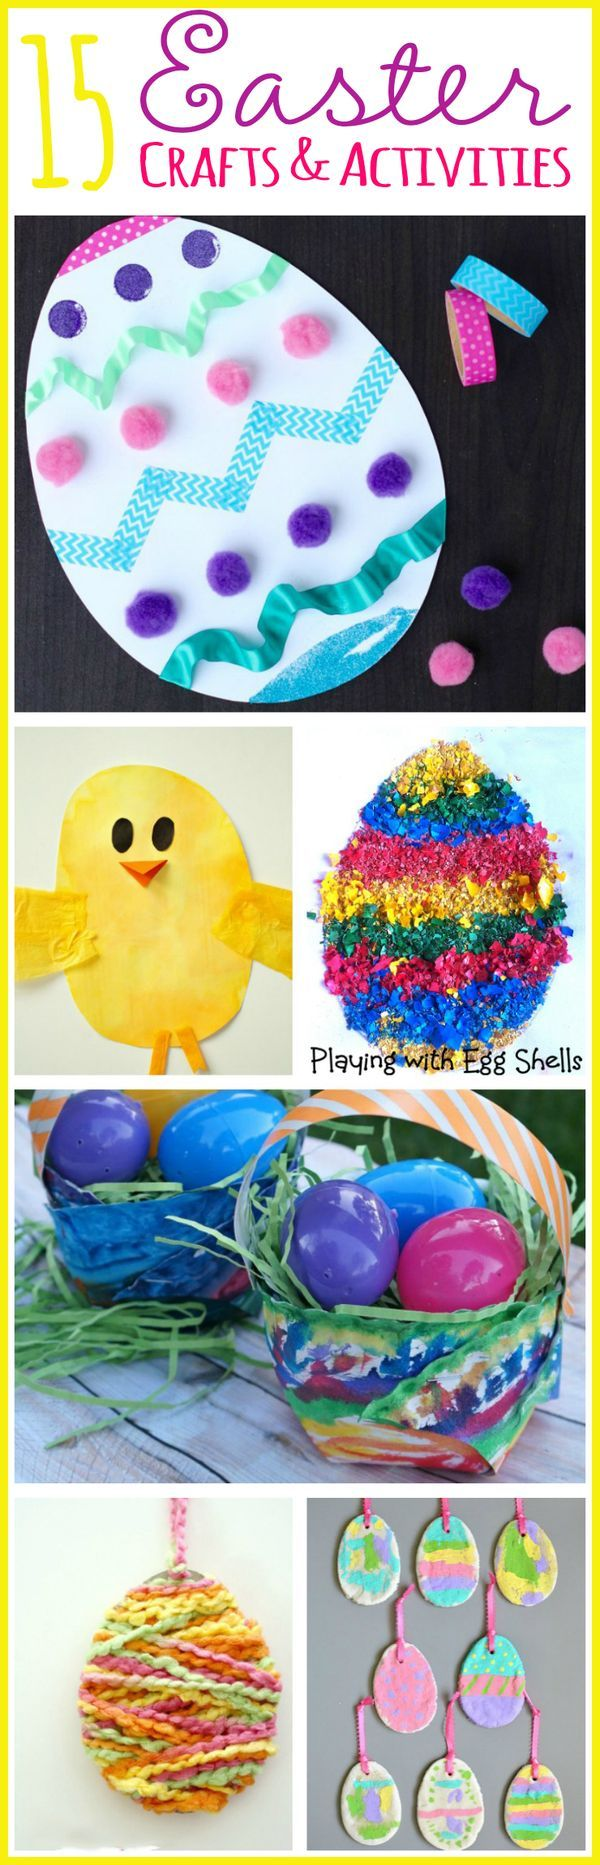 Let the kids have fun with these 15 easy Easter crafts and activities!